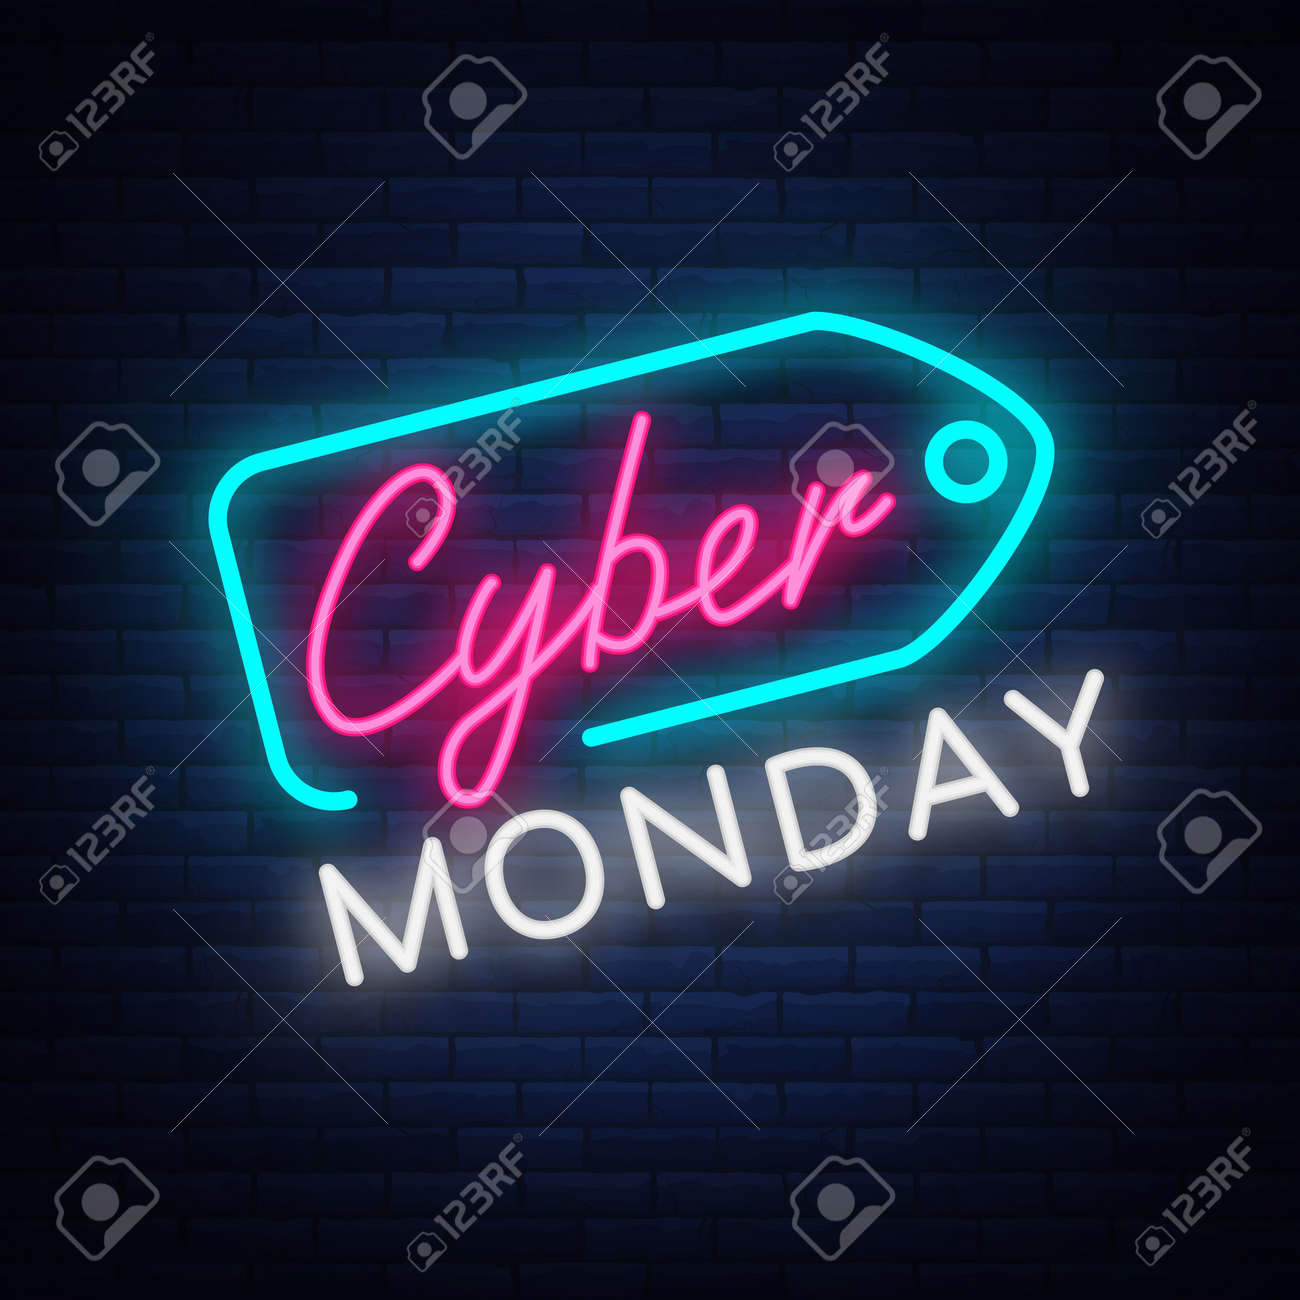 Cyber Monday concept banner in fashionable neon style, luminous signboard, nightly advertising advertisement of sales rebates of cyber Monday. Vector illustration for your projects. - 88680739